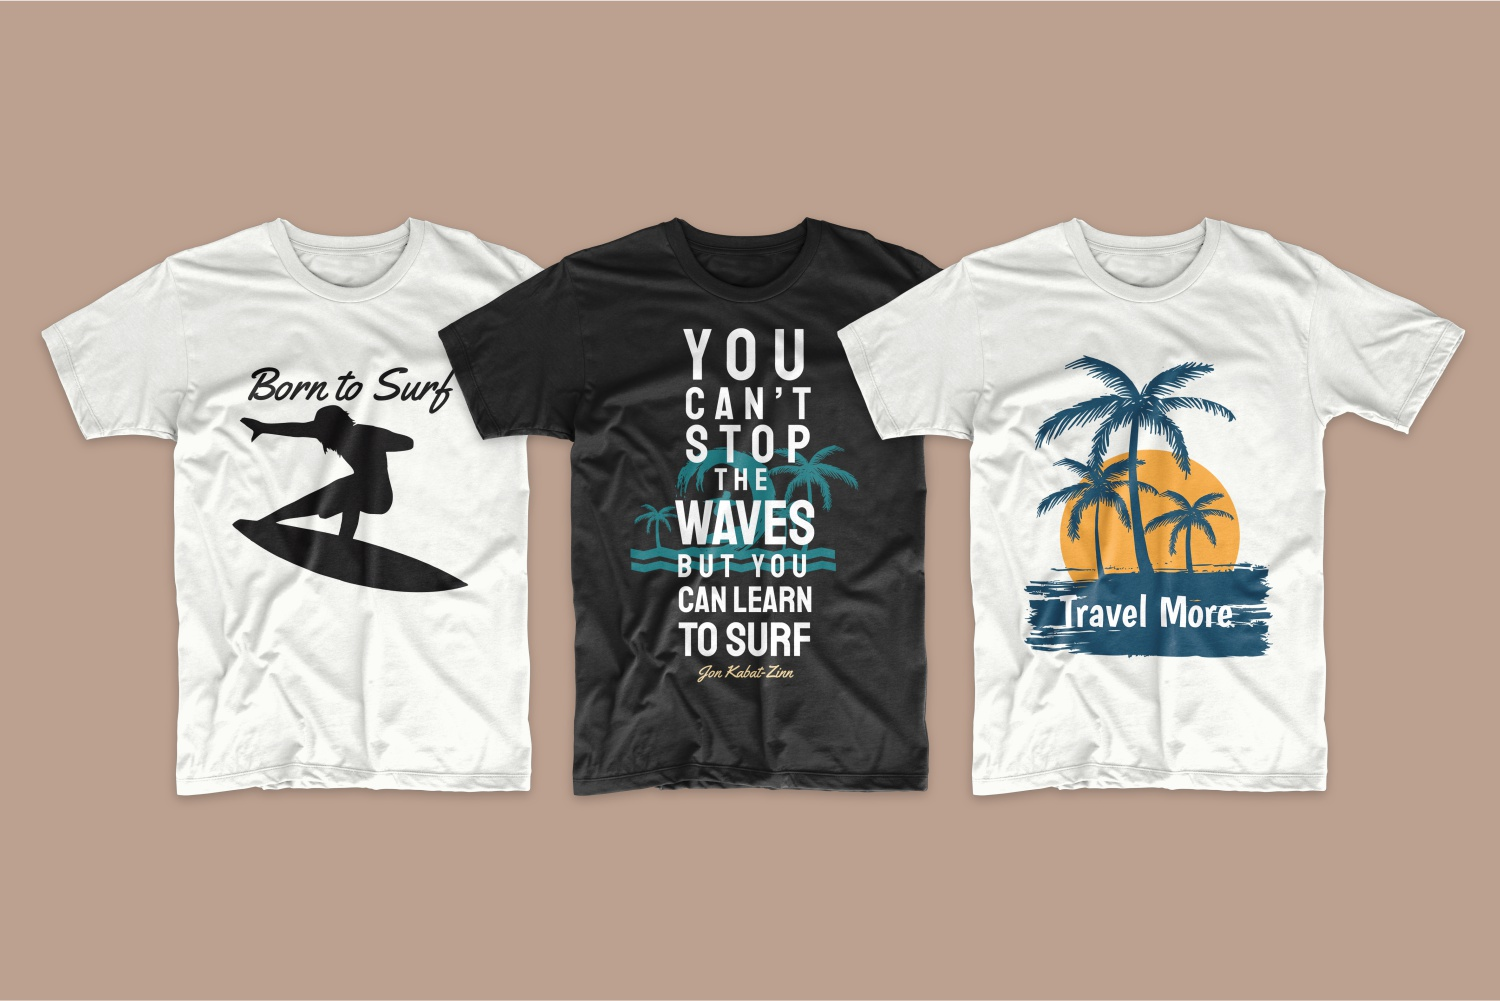 50 Surfing T-shirt Designs - 11 4